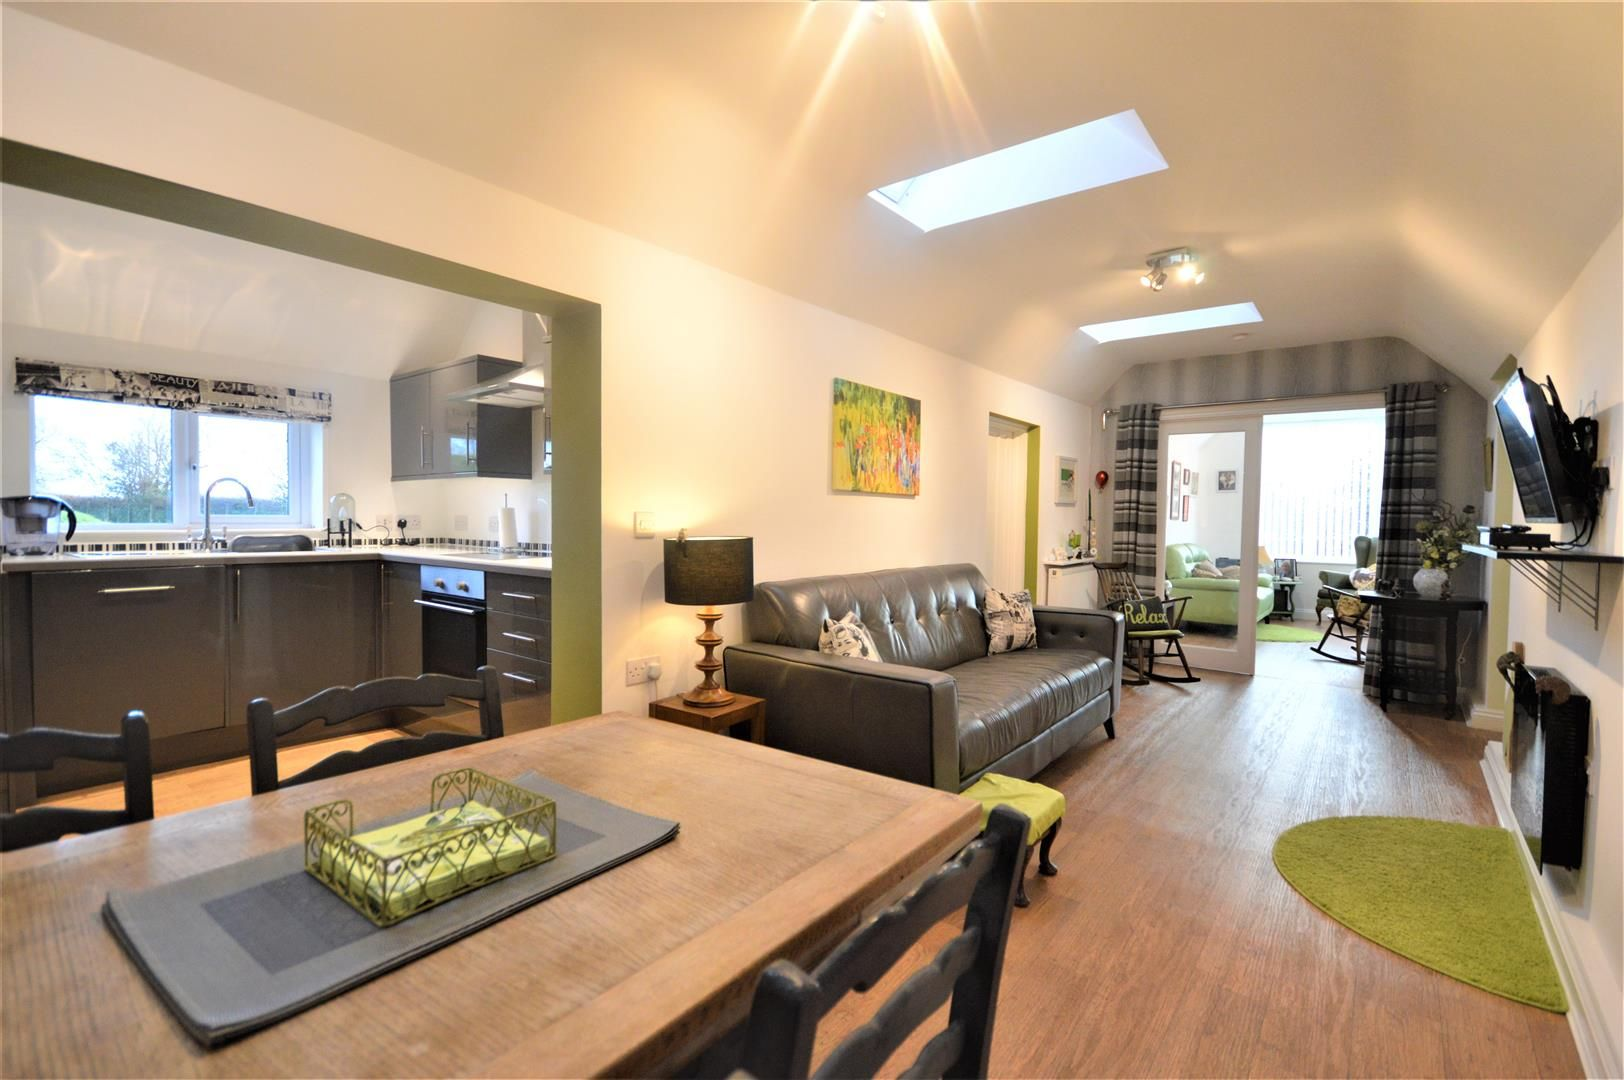 4 bed semi-detached for sale in Leysters  - Property Image 3